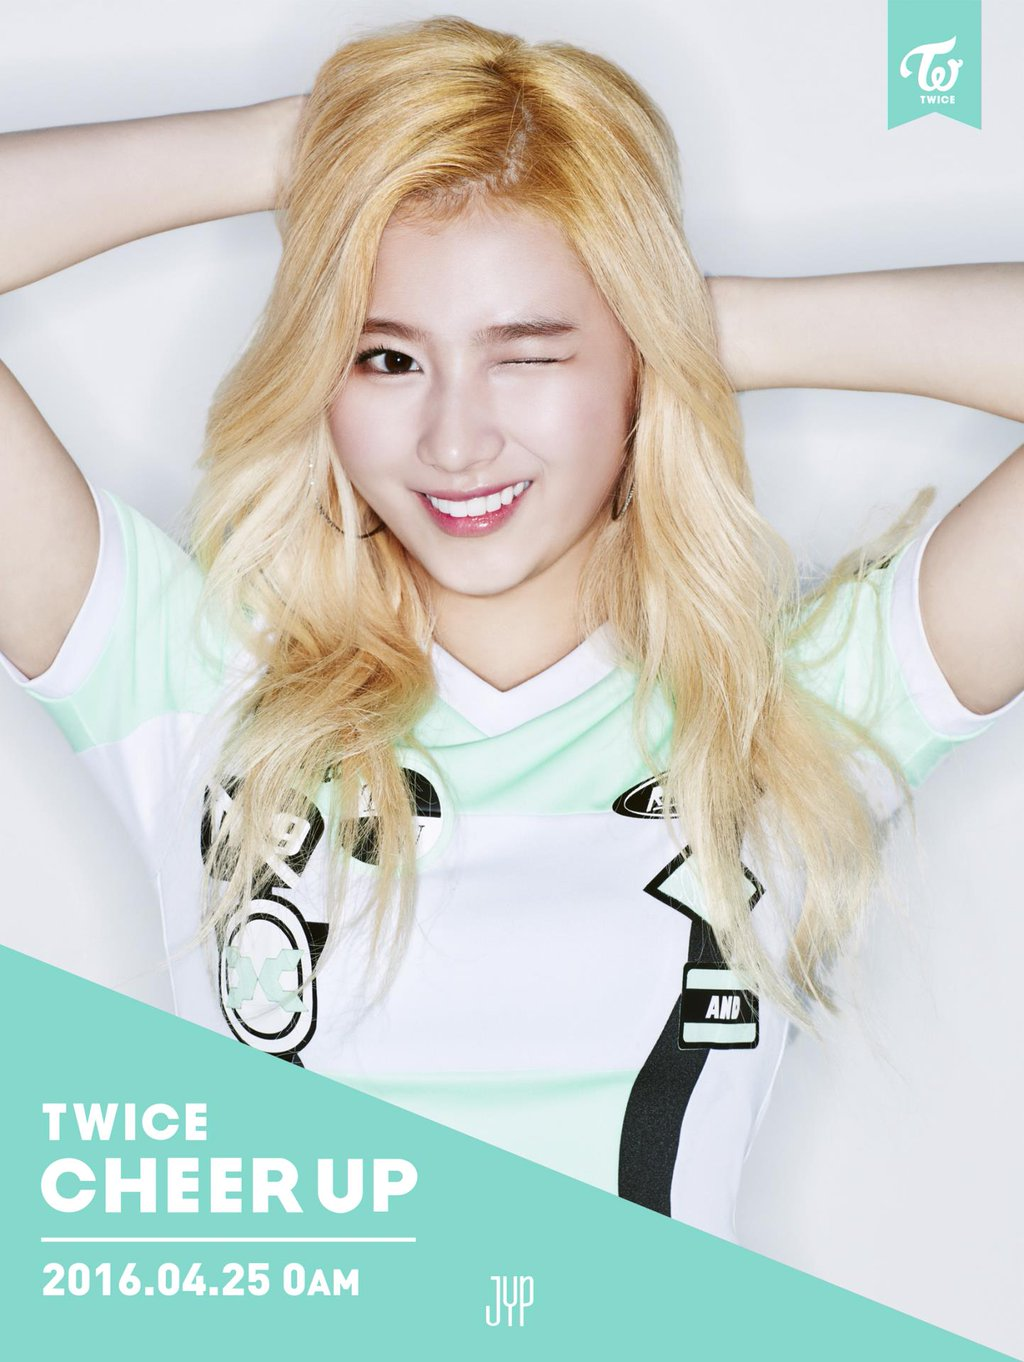 sana cheer up teaser 2